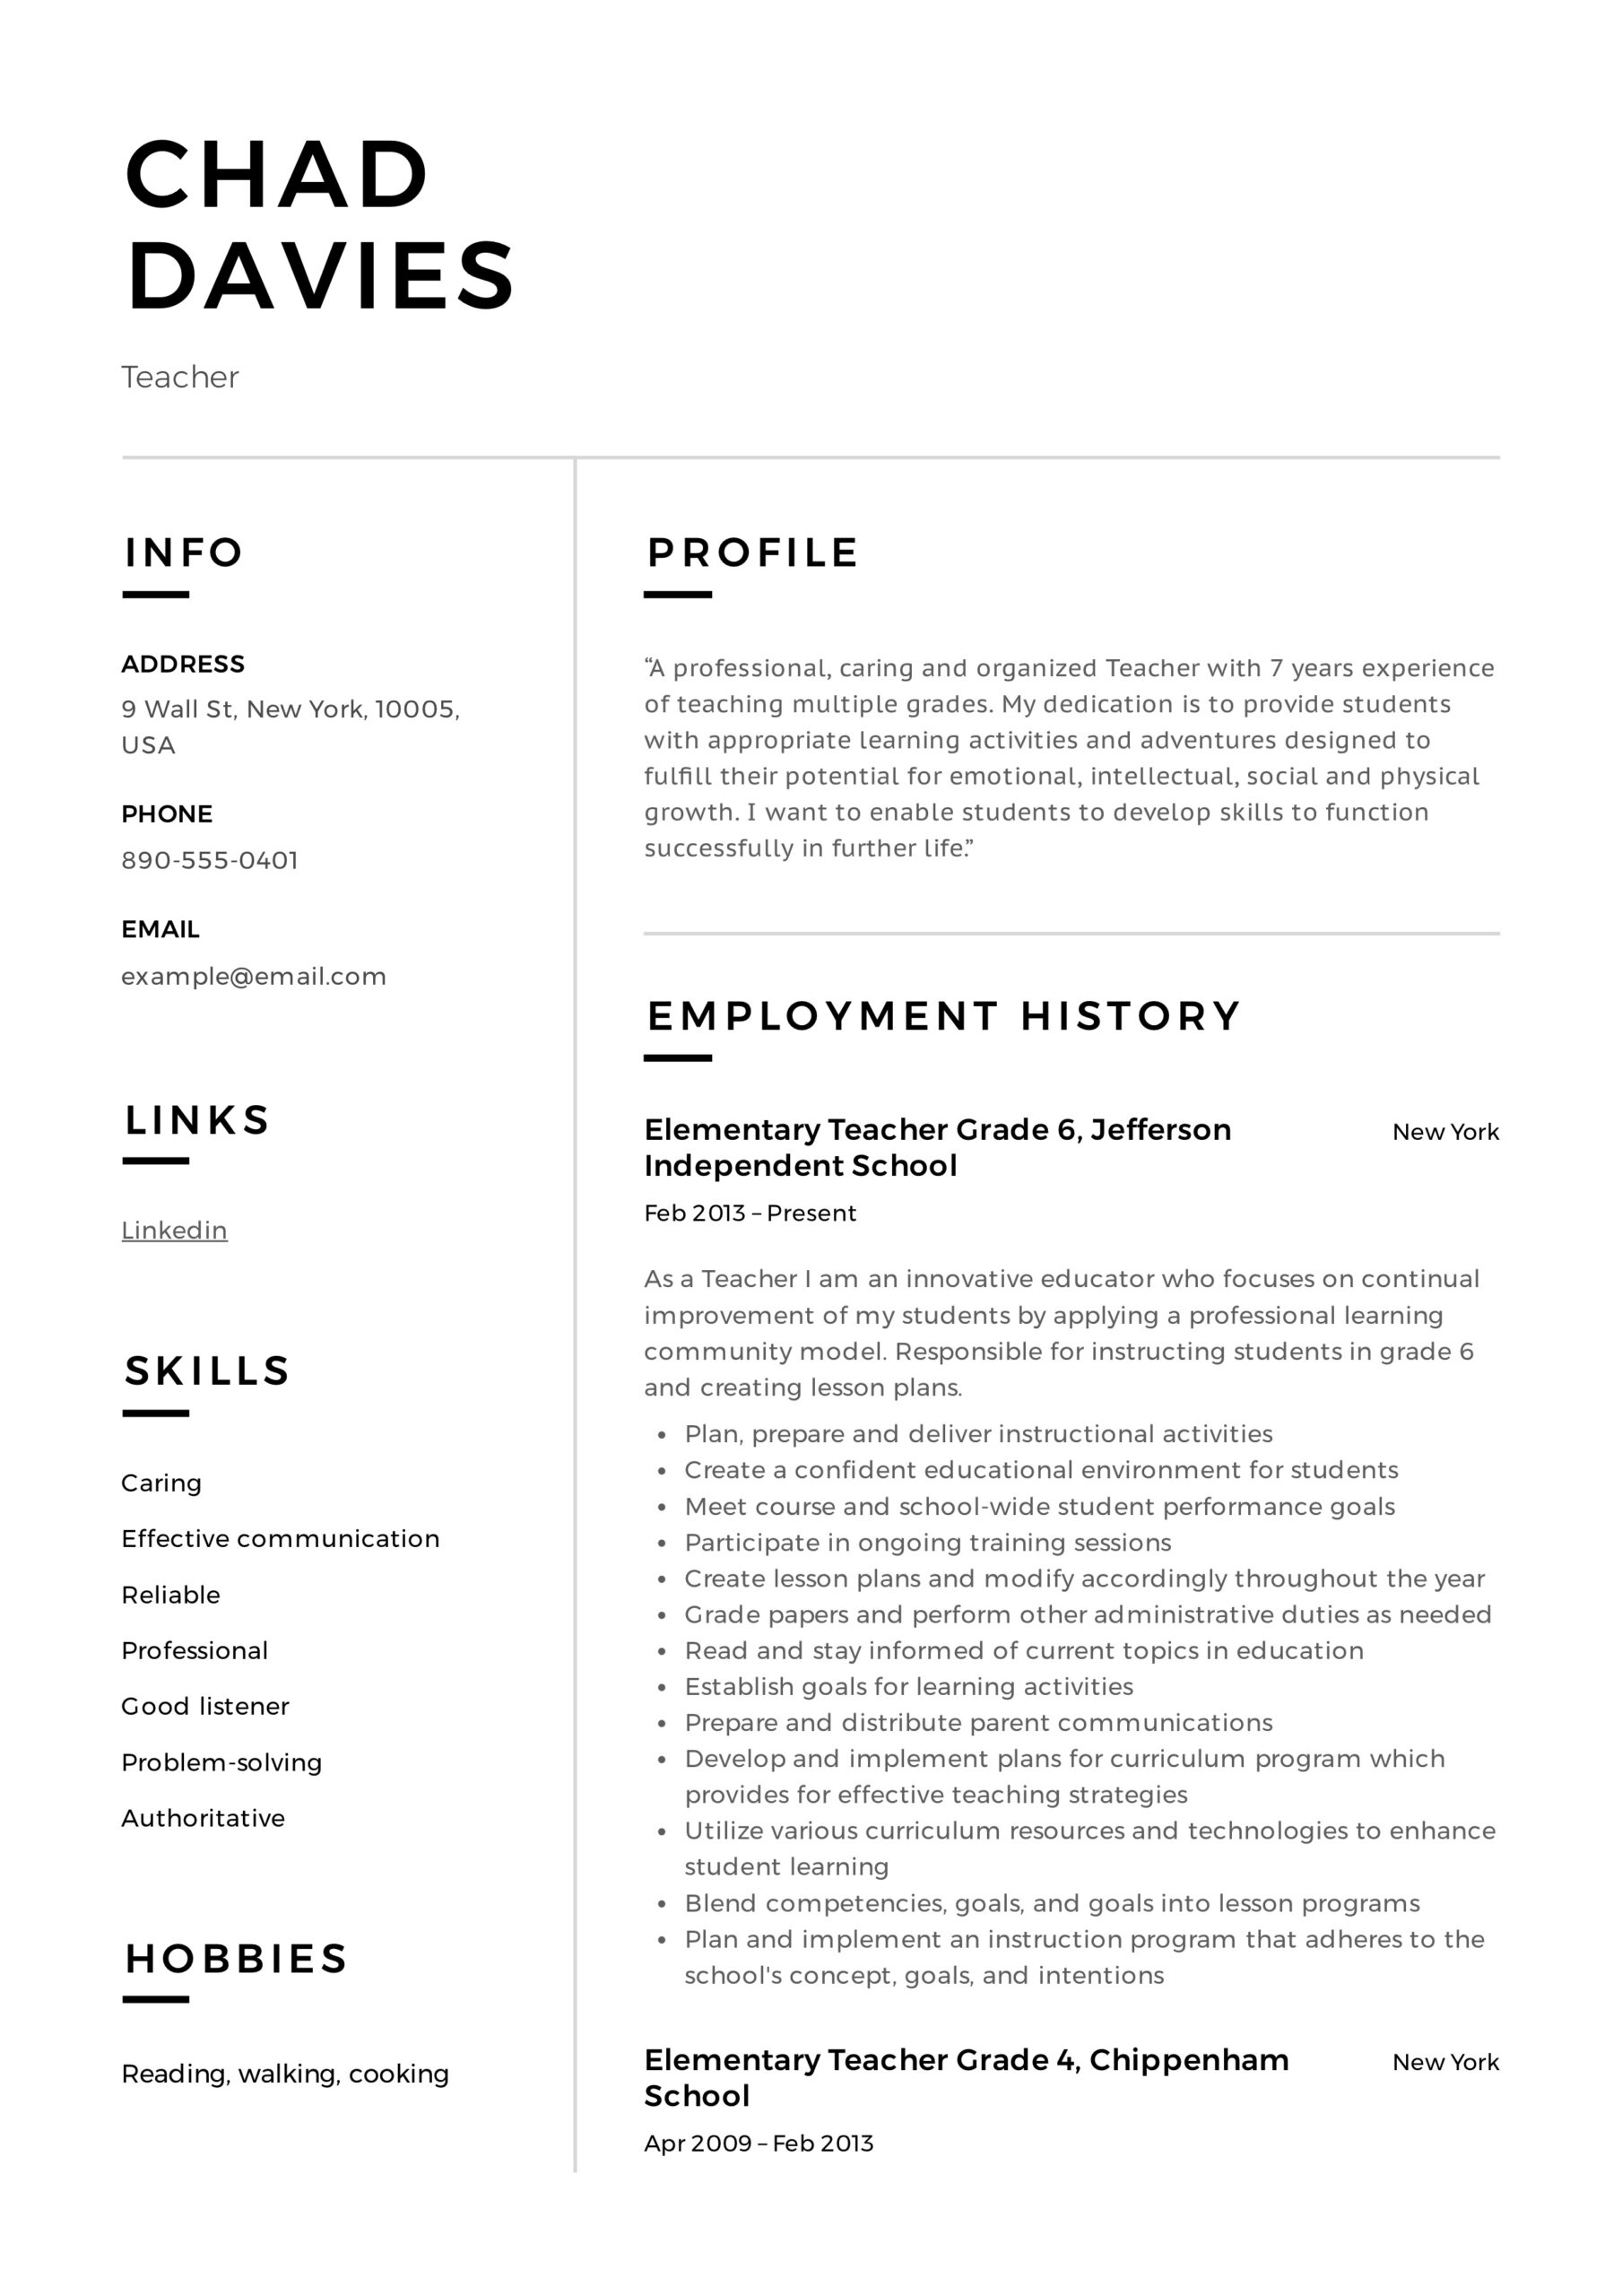 teacher resume writing guide examples pdf elementary objective sample mistakes catia Resume Elementary Teacher Resume Objective Examples